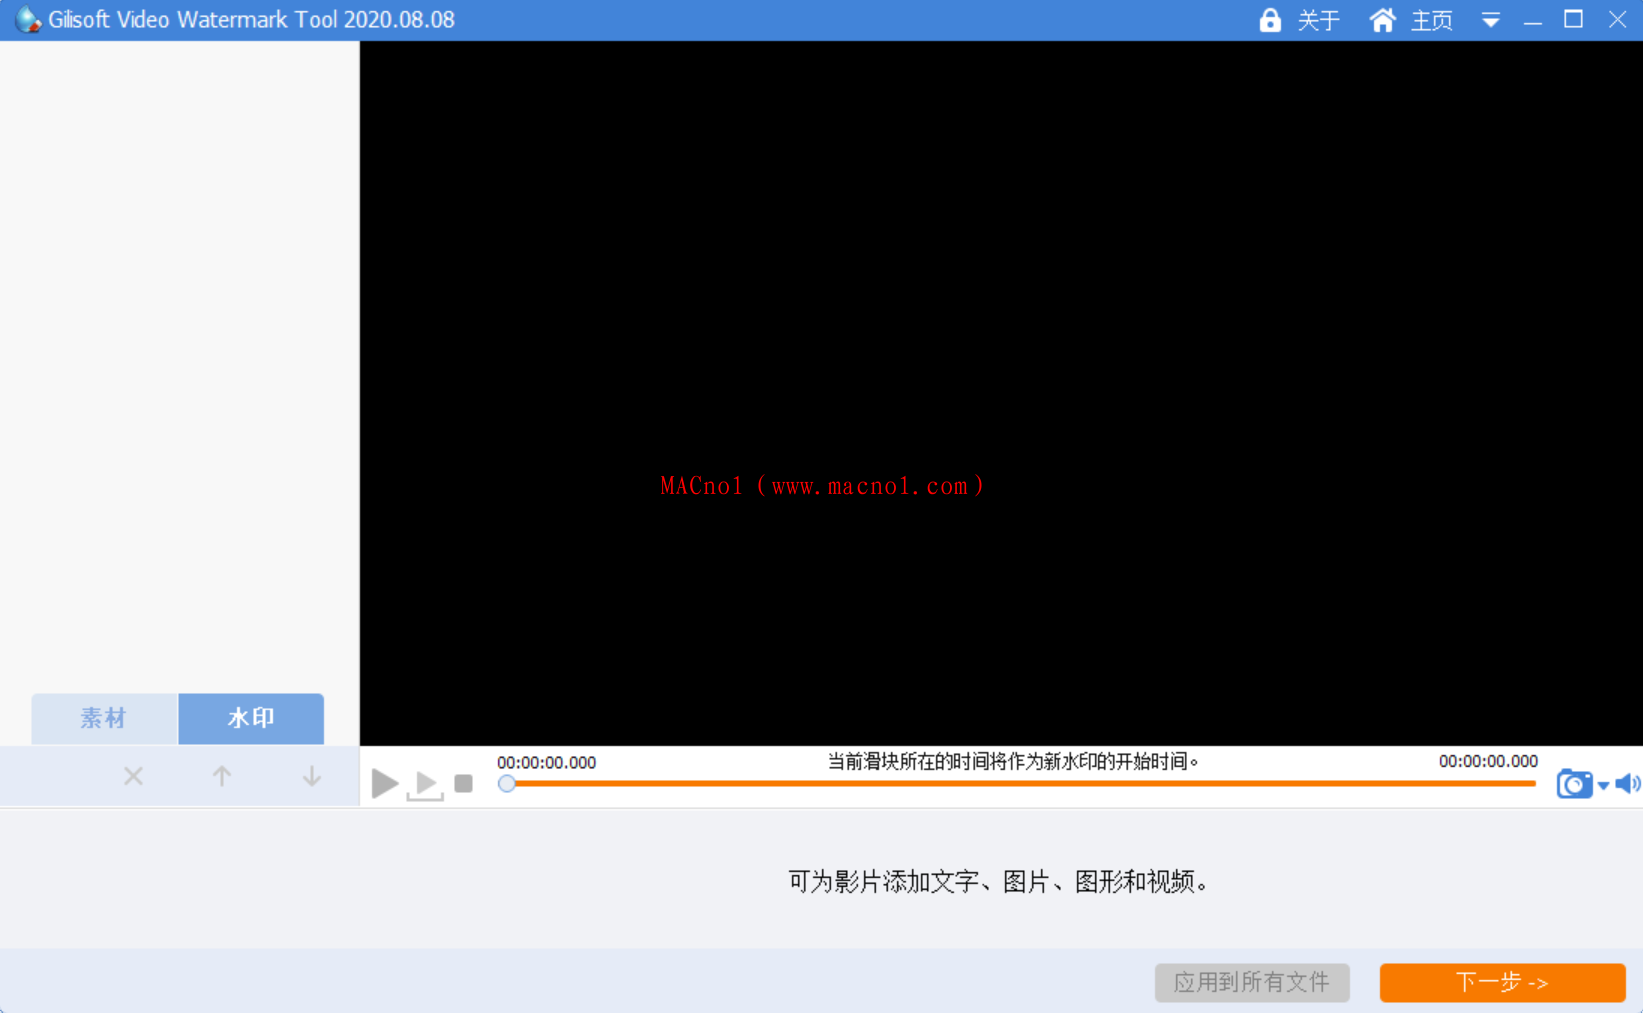 GiliSoft Video Watermark Tool 破解版.png